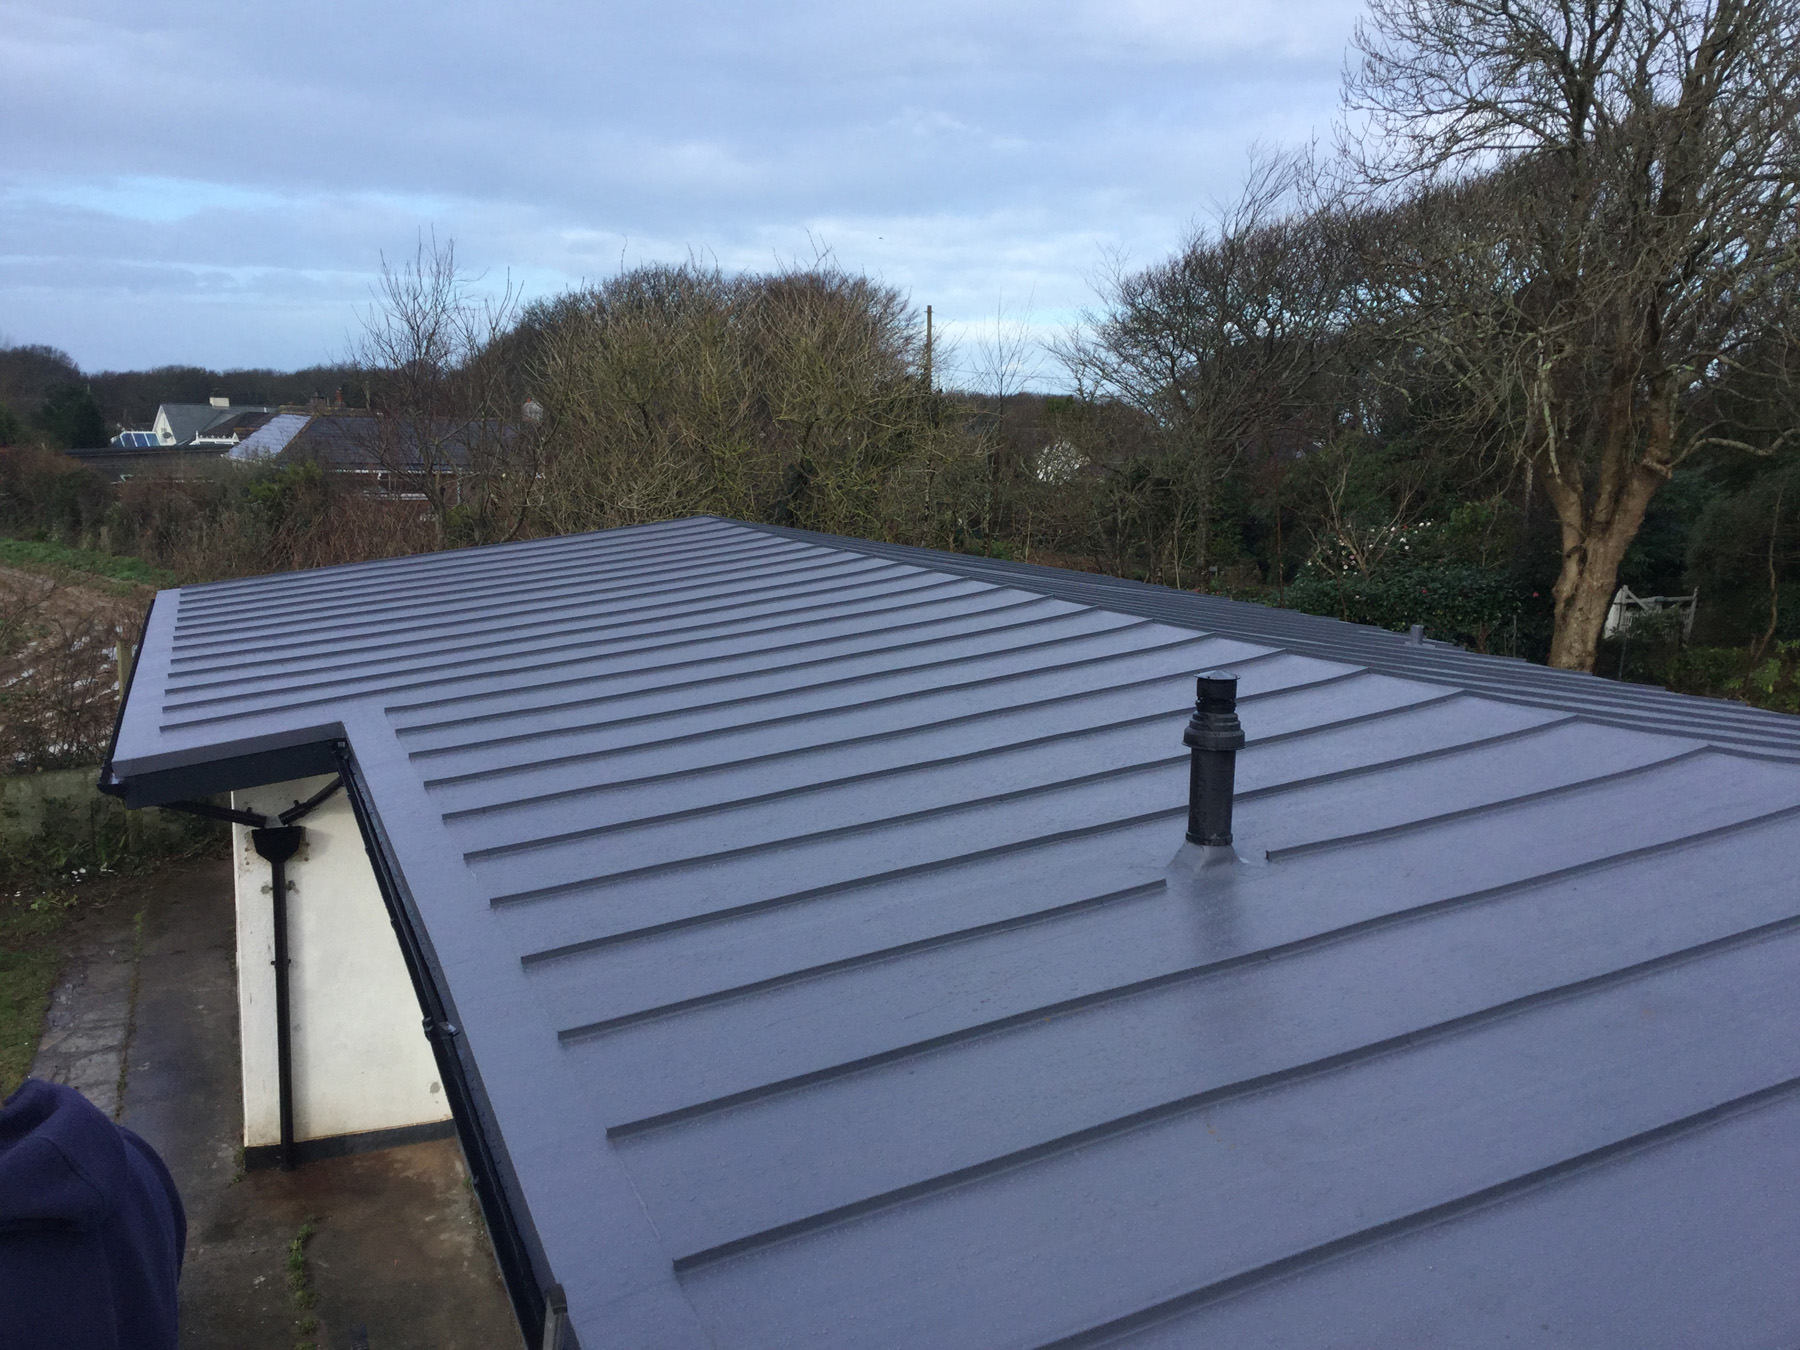 Cornwall Bungalow Roof - April Best Roofing Photo of the Month